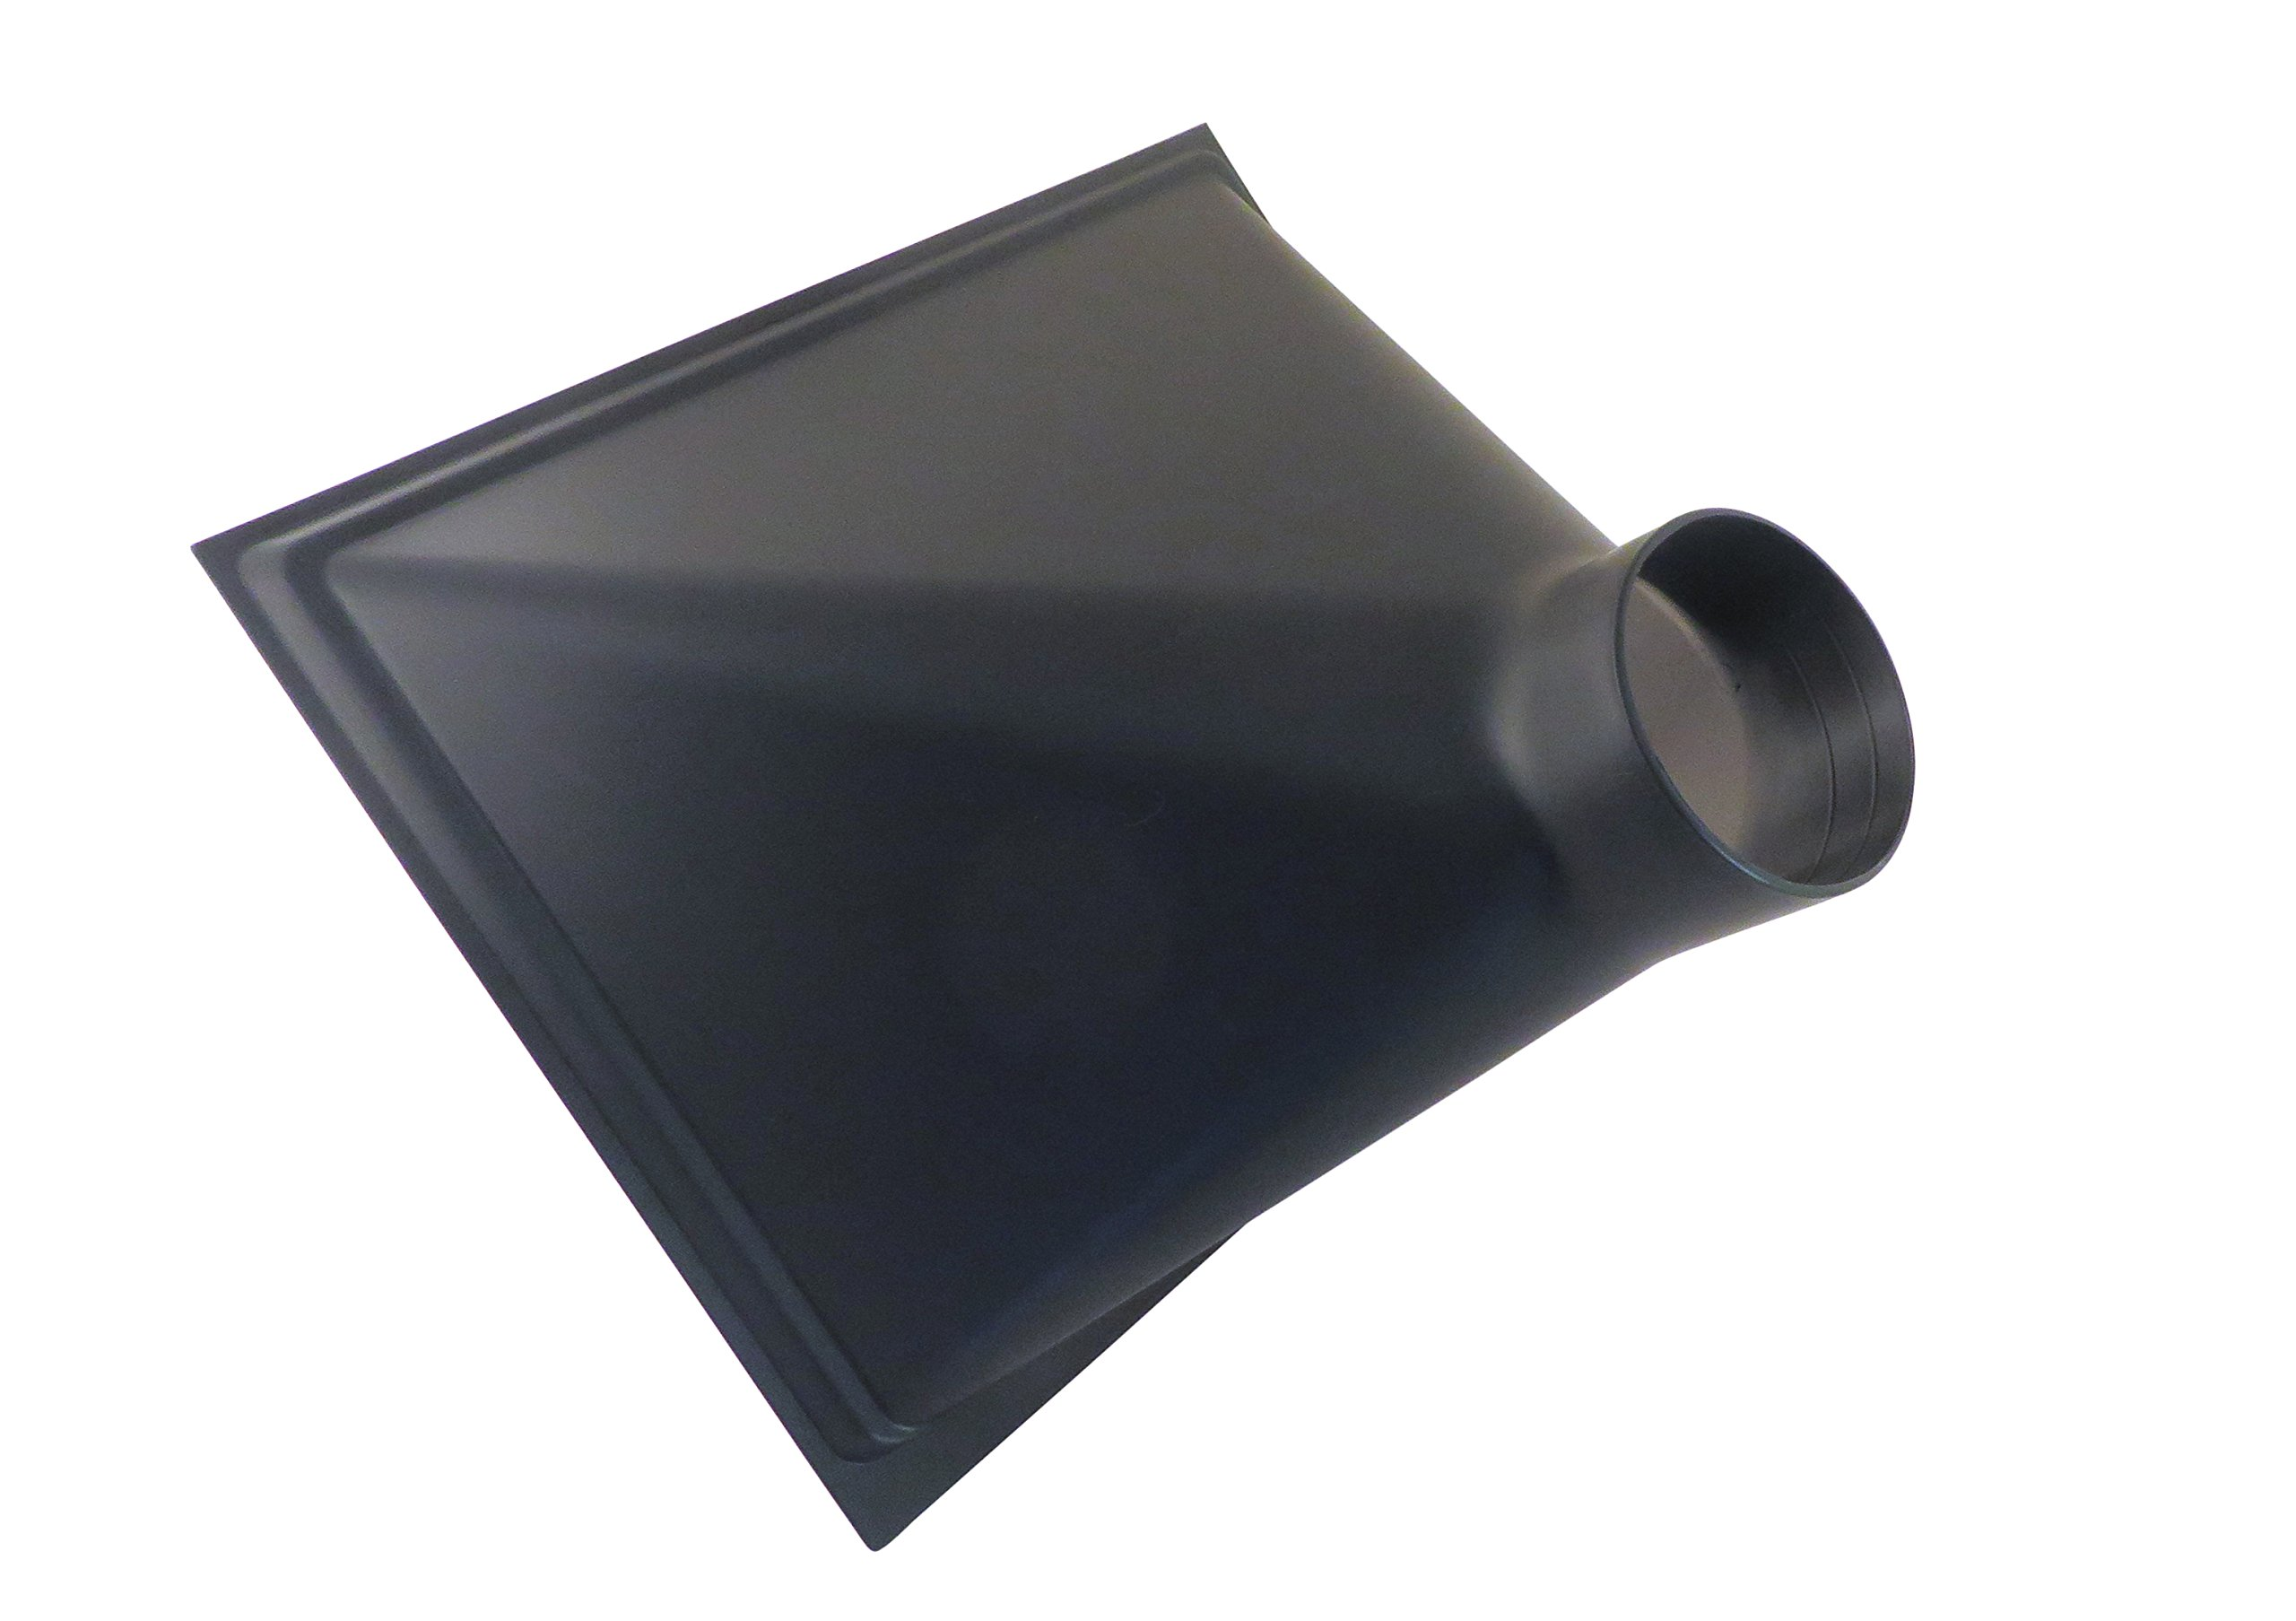 Gigantic 13 x 16 x 10 Inch Deep ABS Plastic Dust Hood with 4 Inch OD Opening for Dust Collector Systems 73464 by Taytools